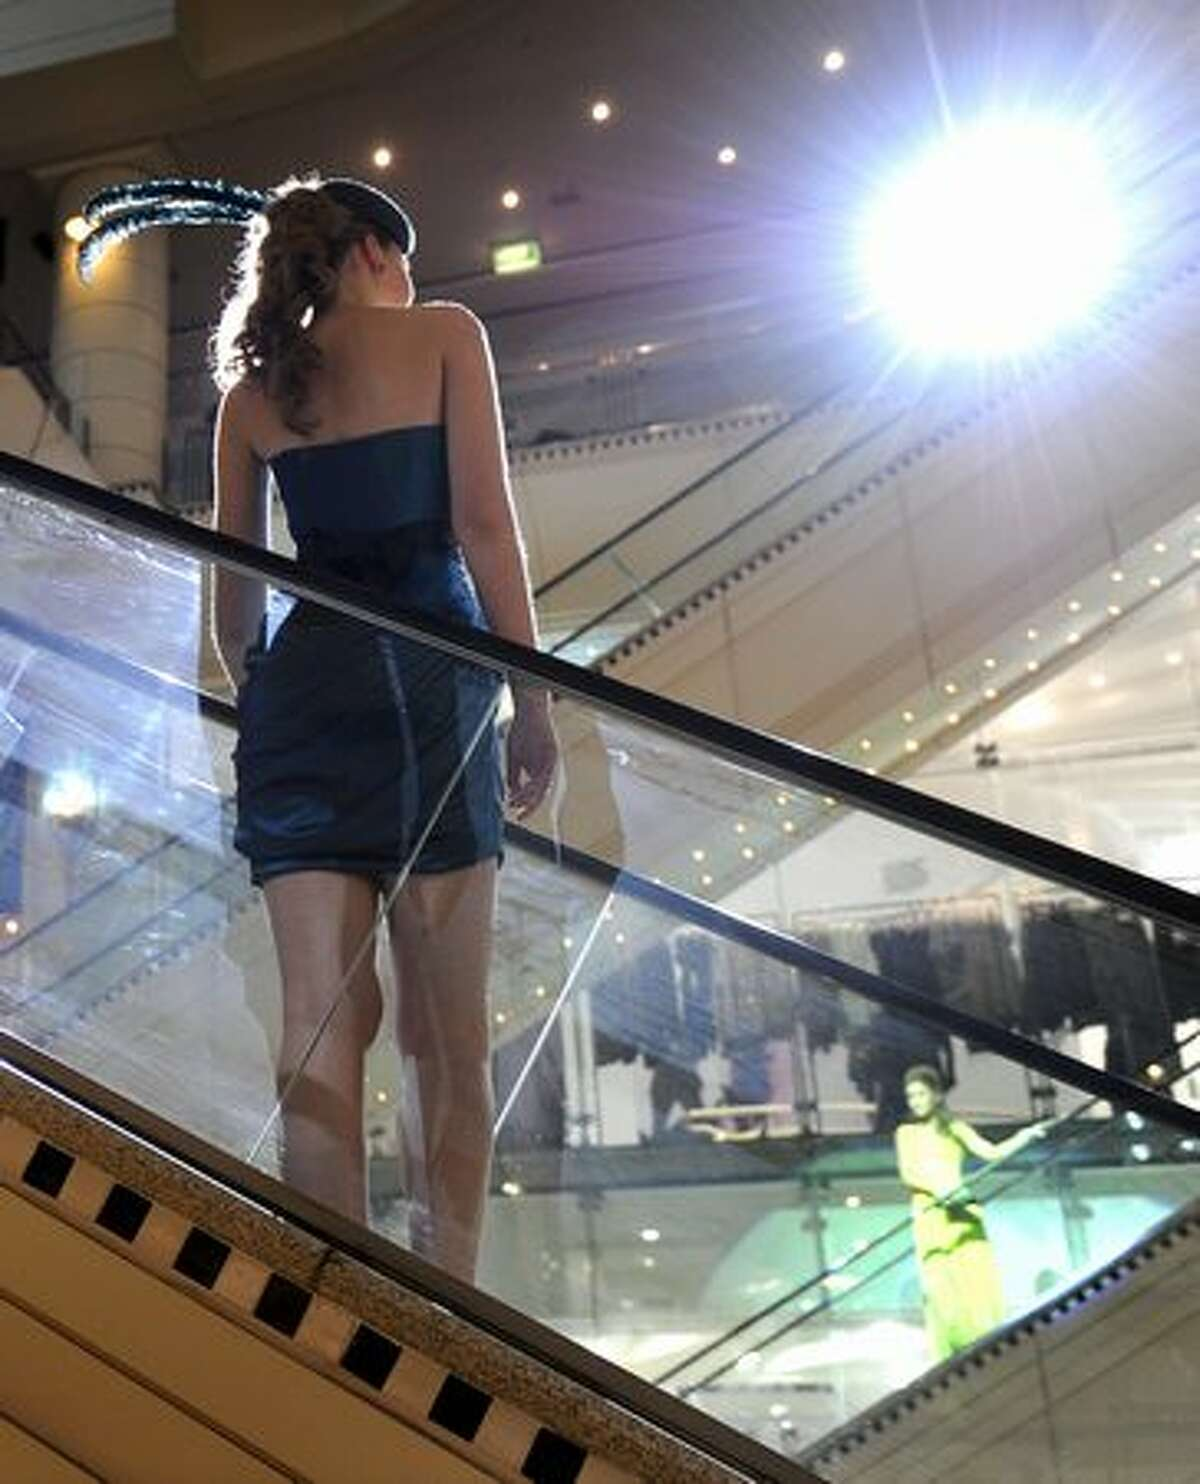 A model parades an outfit on an escalator during a show of designers at the Collins234 shopping complex.